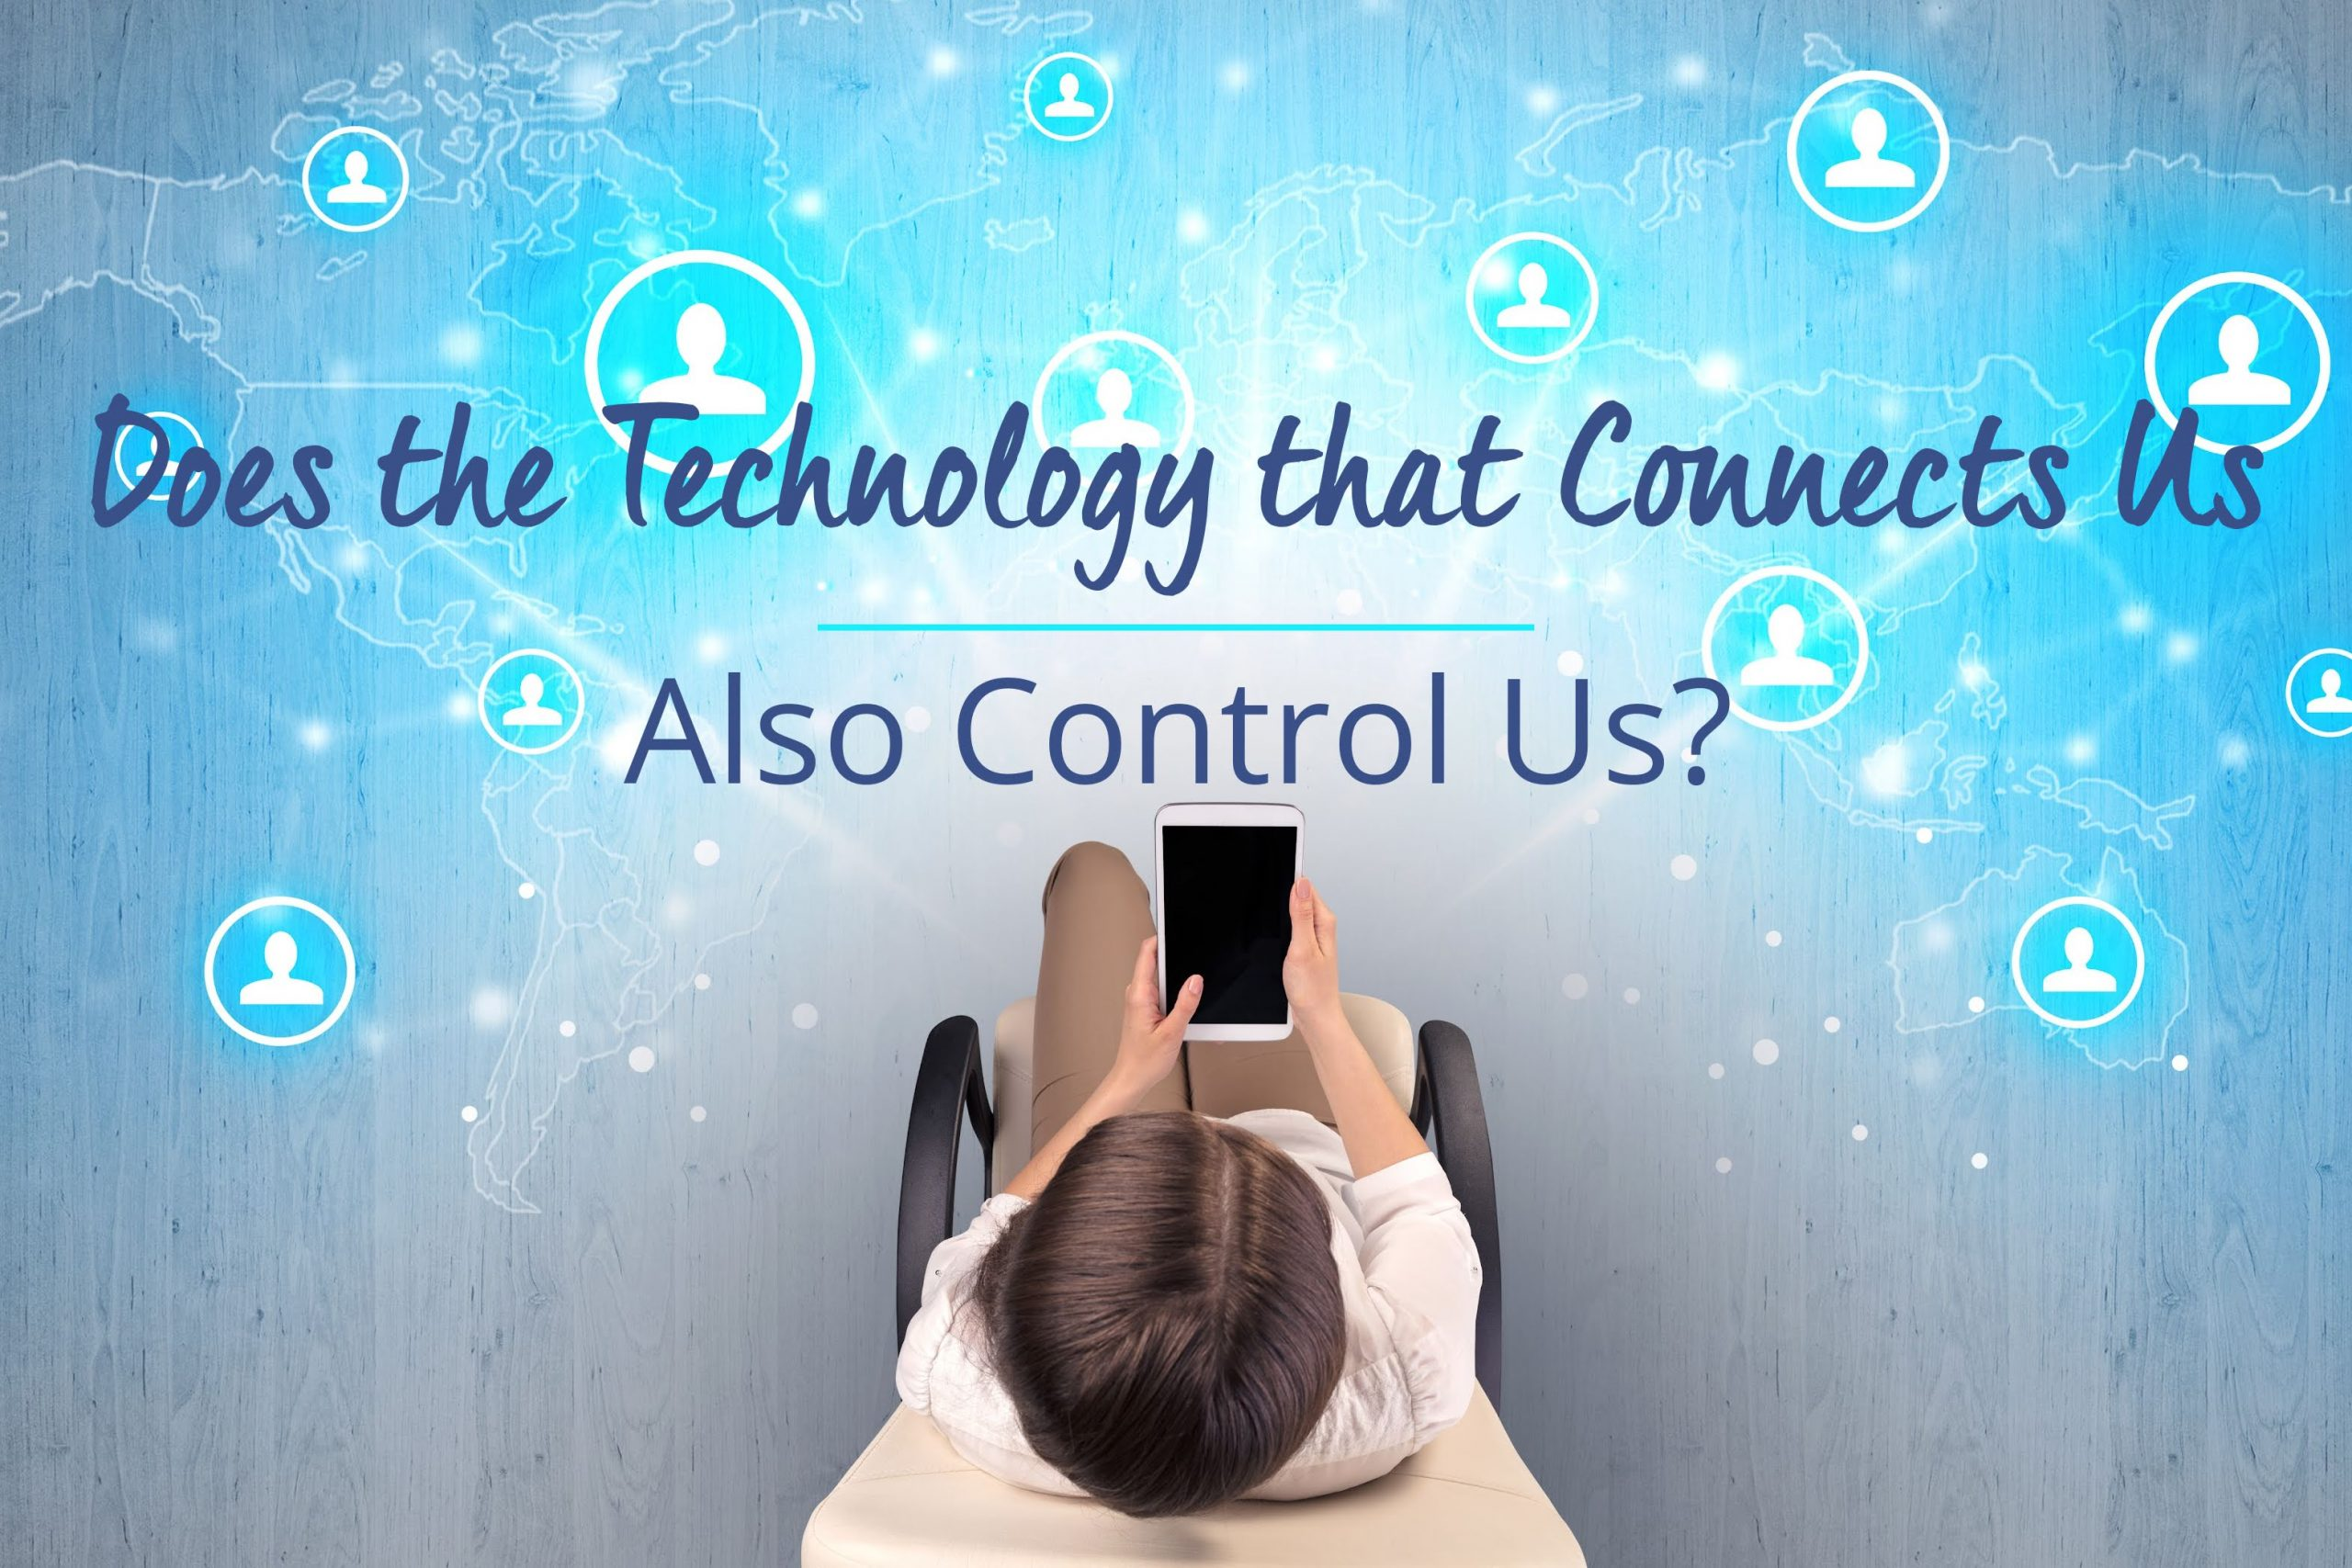 Technology Connects Us and Controls Us